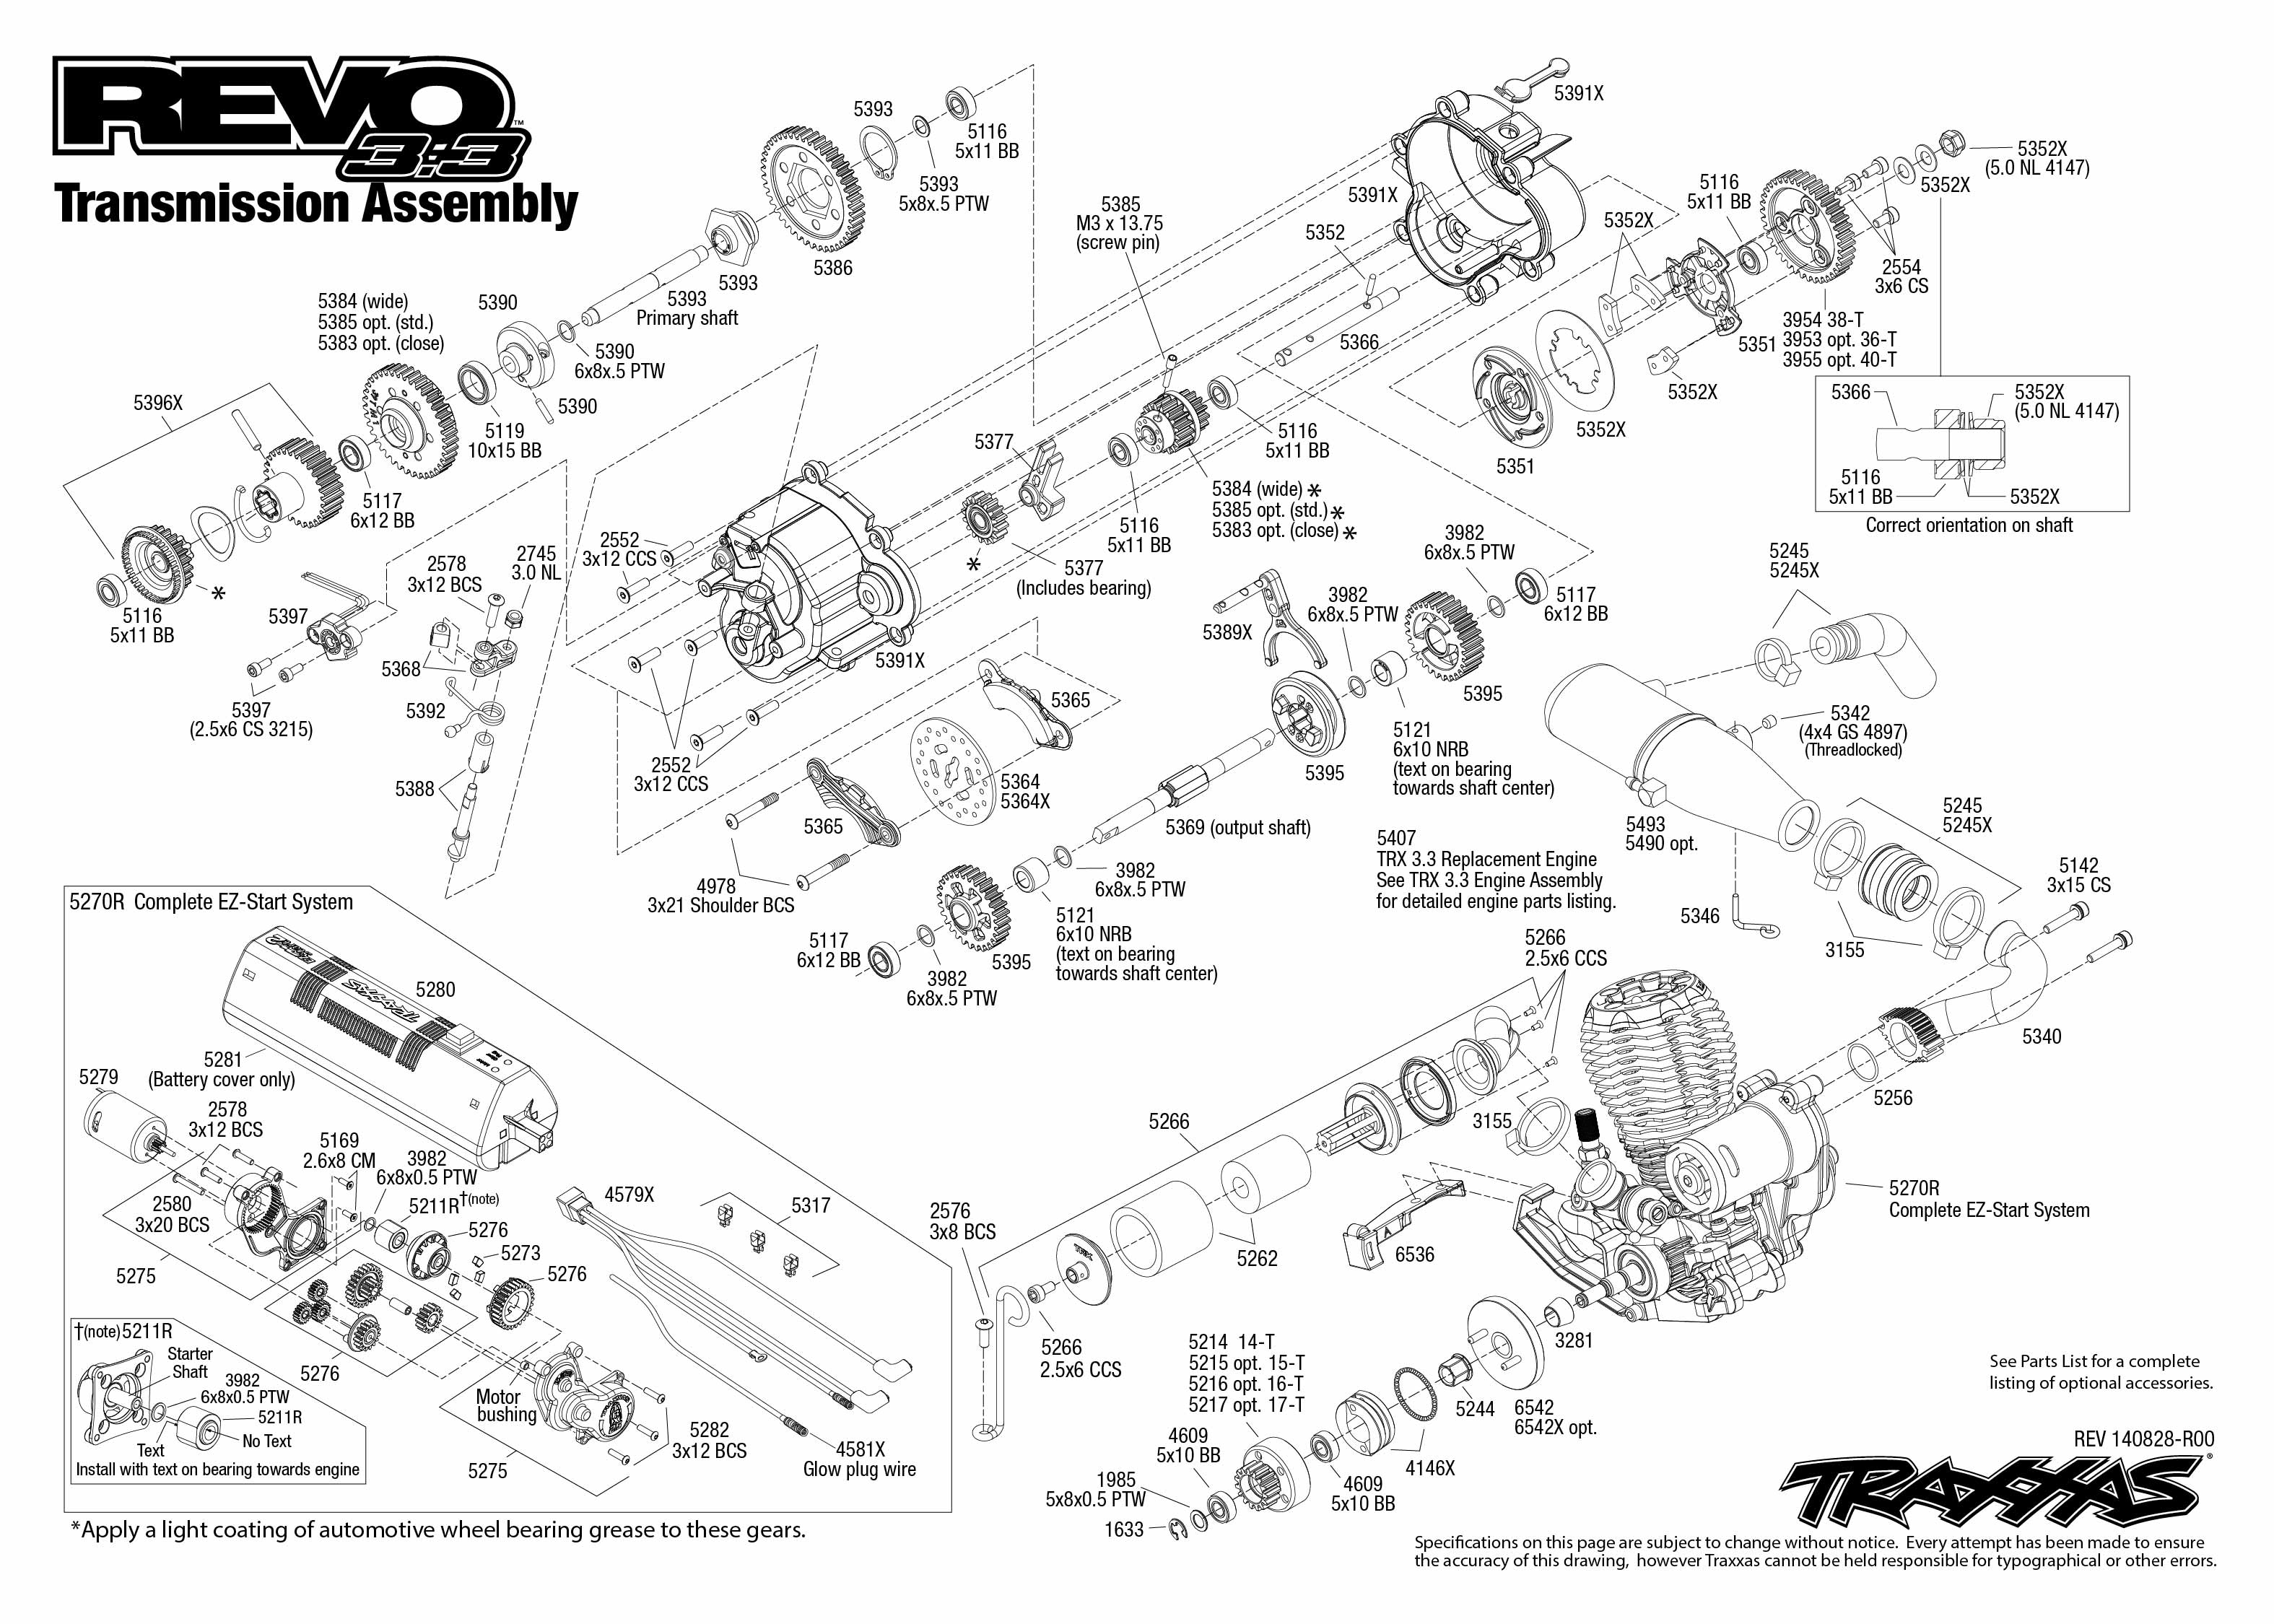 Revo 3.3 (53097-1) Transmission Assembly Exploded View